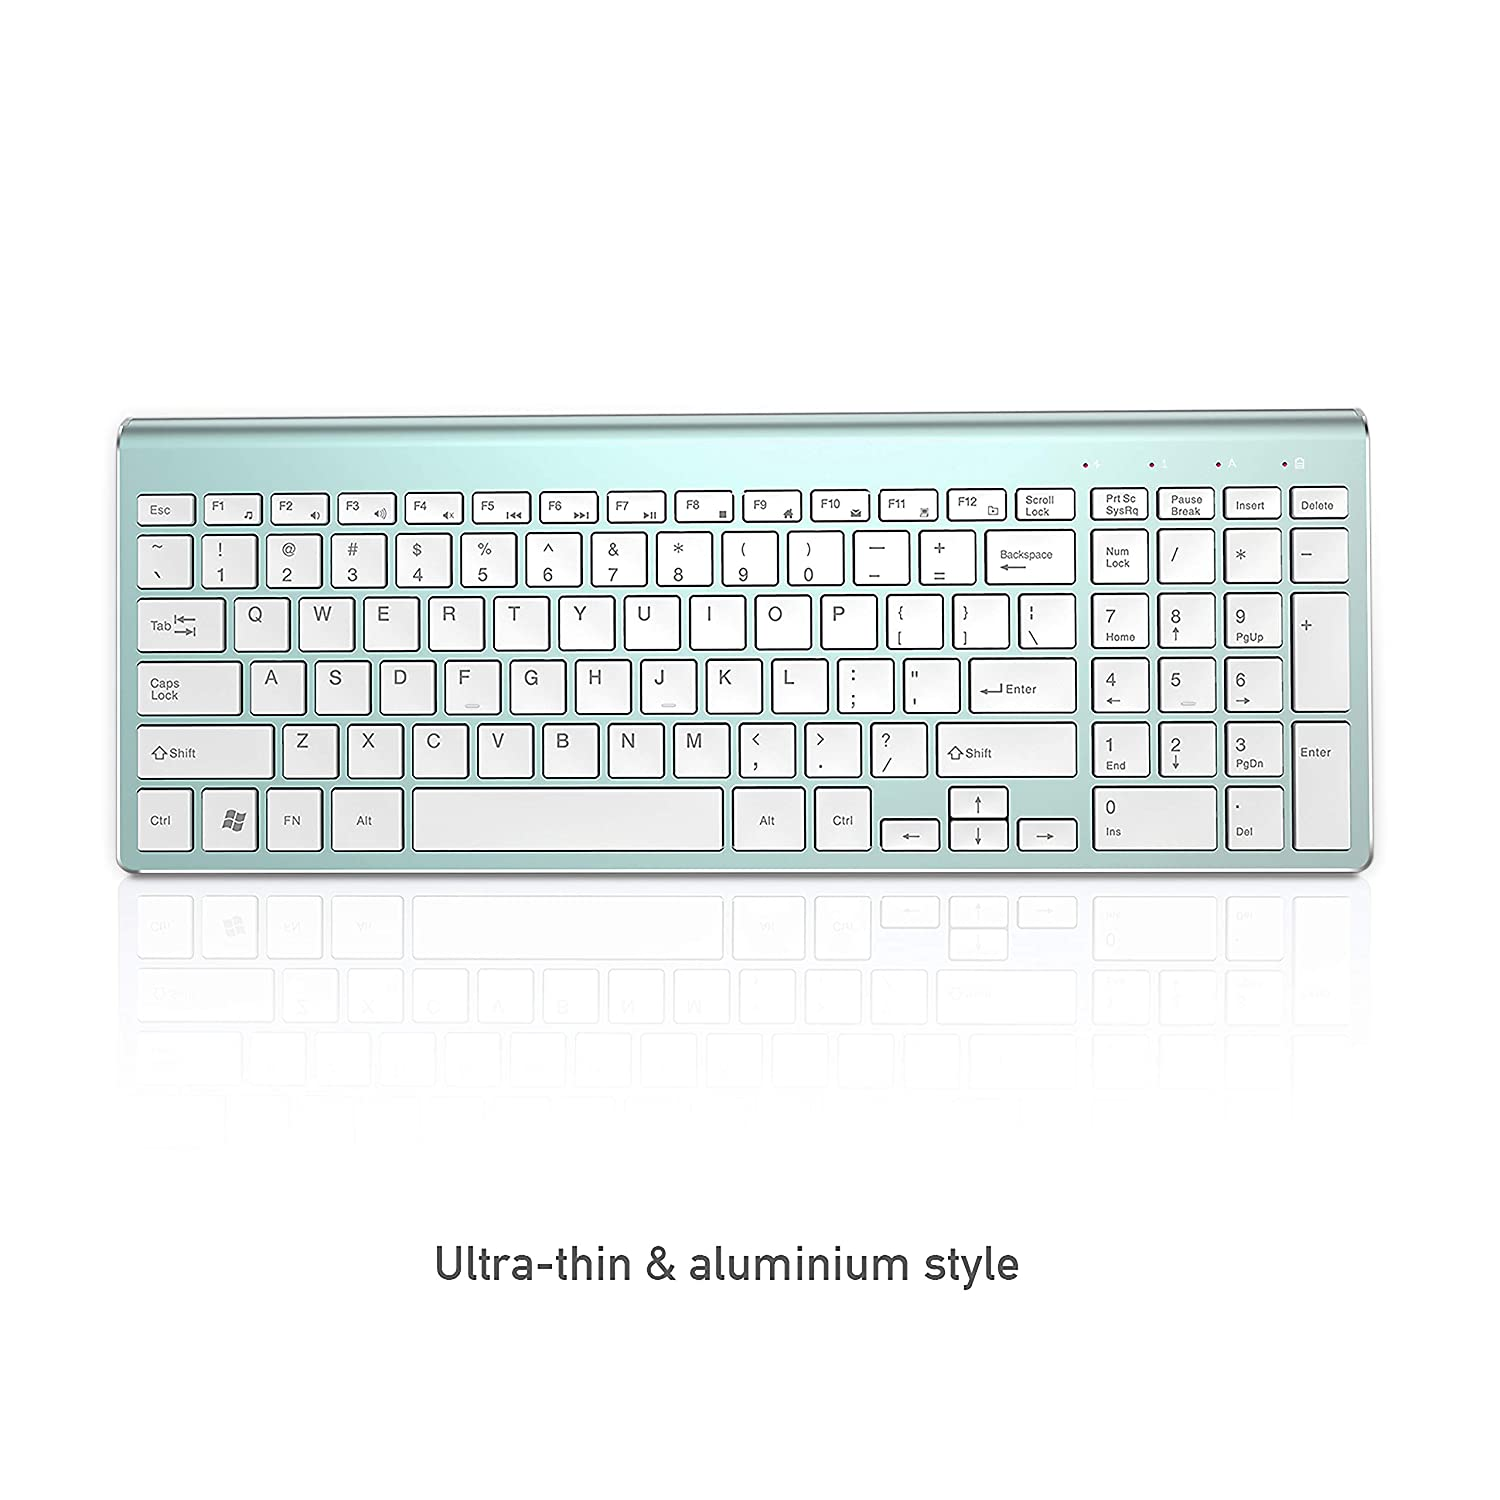 Space Gray Compact Full Size Less Noisy Keyboard and Mouse Sleek Design and High Precision 2400 DPI for PC Wireless Keyboard Mouse